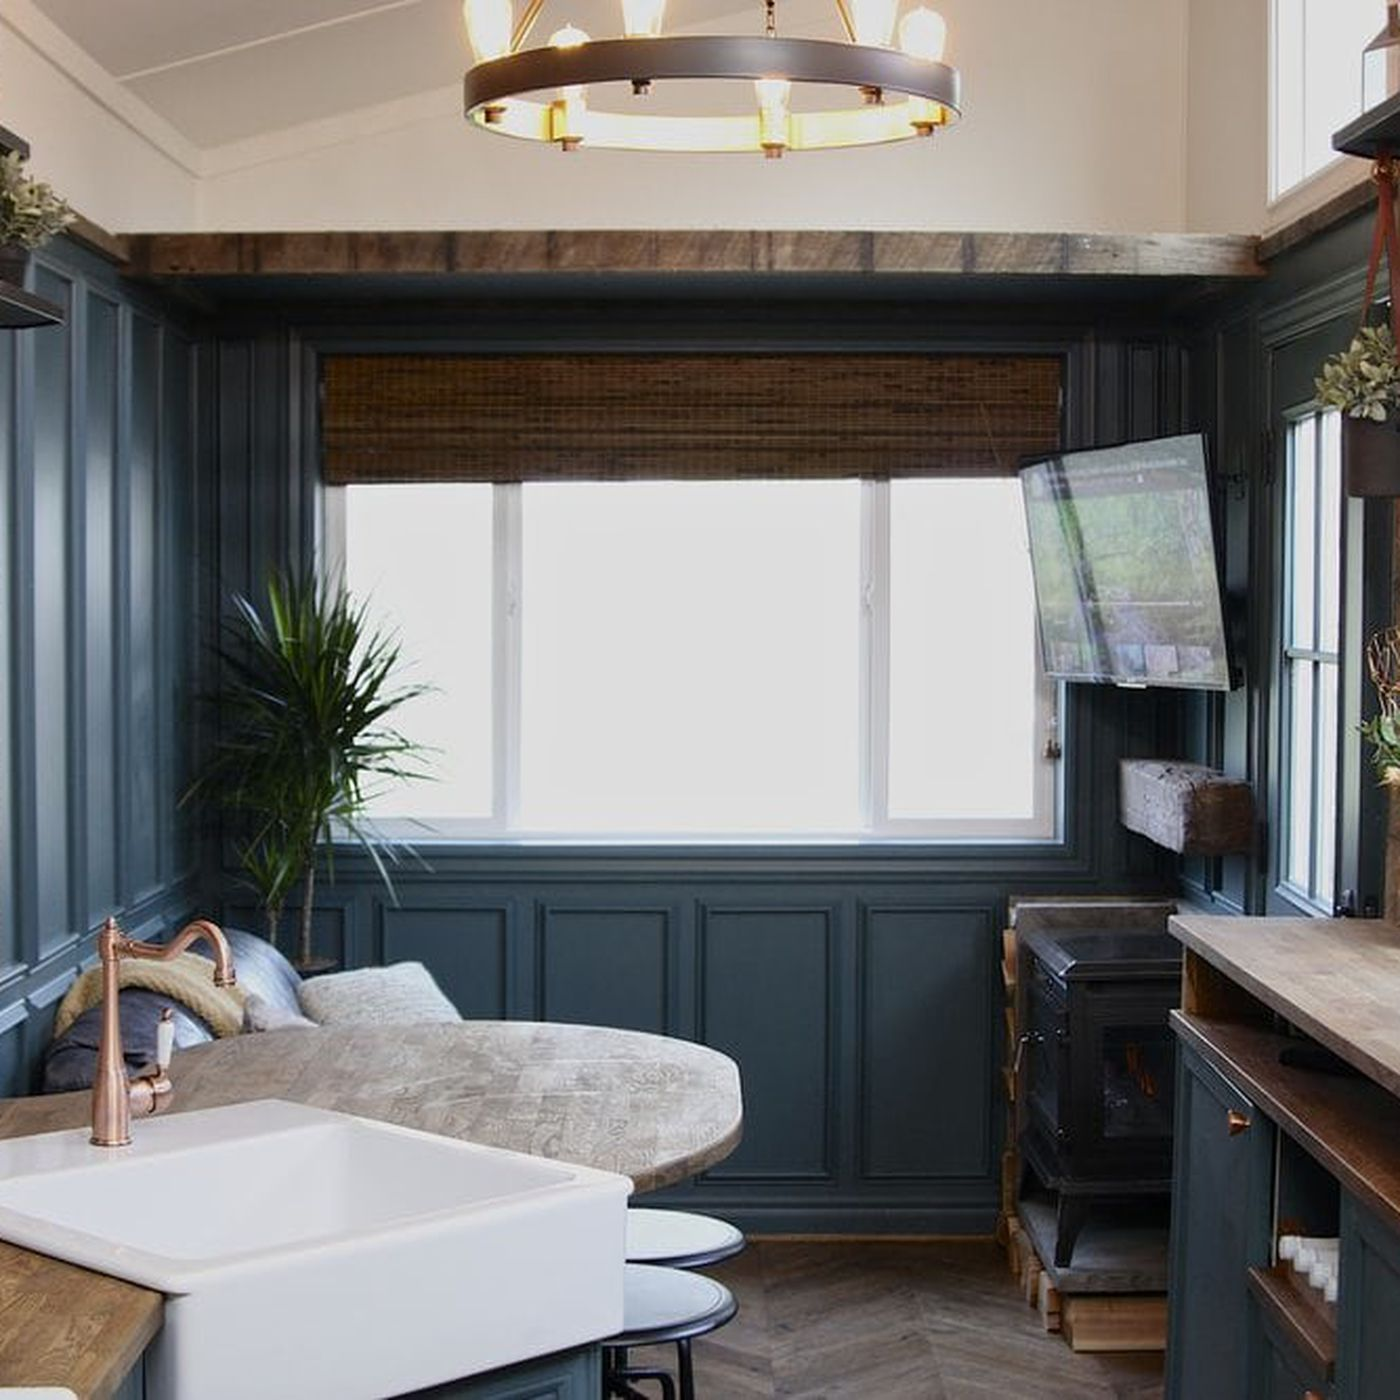 Craftsman\' tiny house goes big on details - Curbed